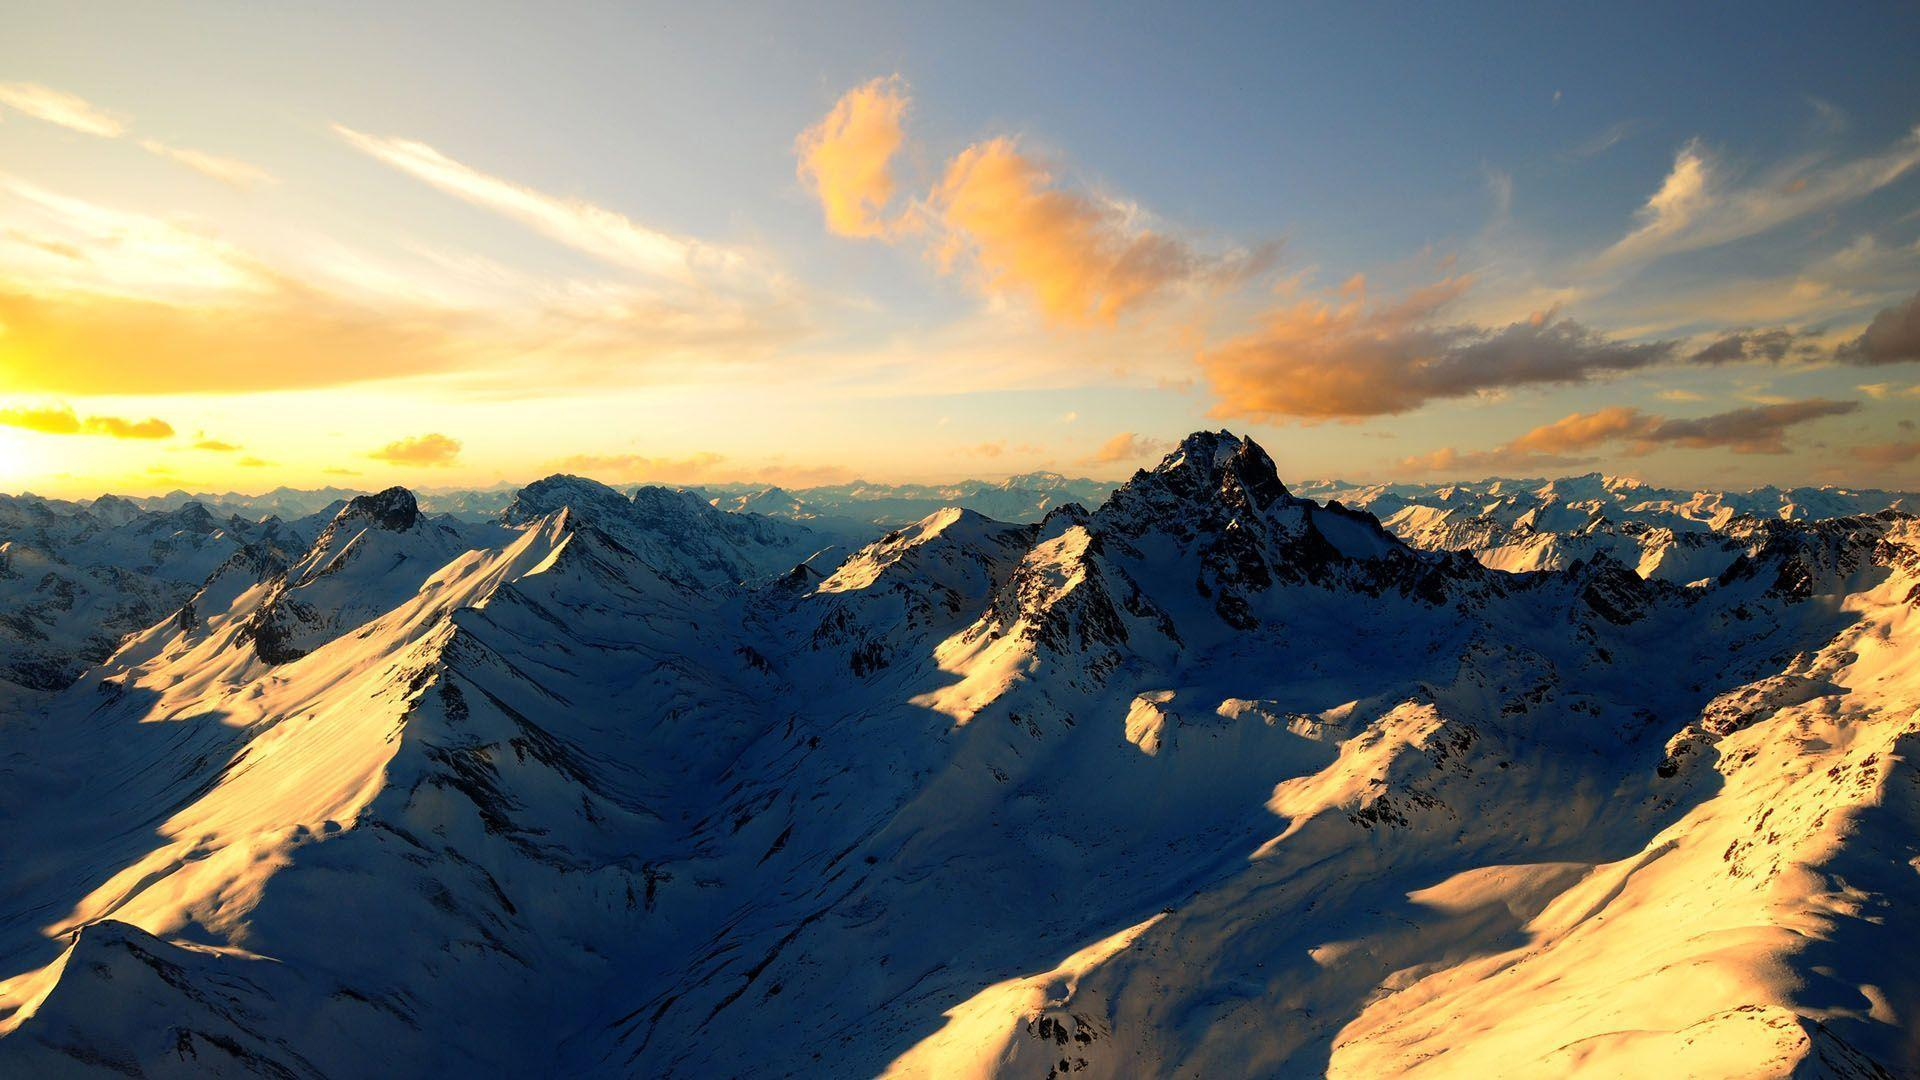 Snow Mountain Wallpapers Sunrise